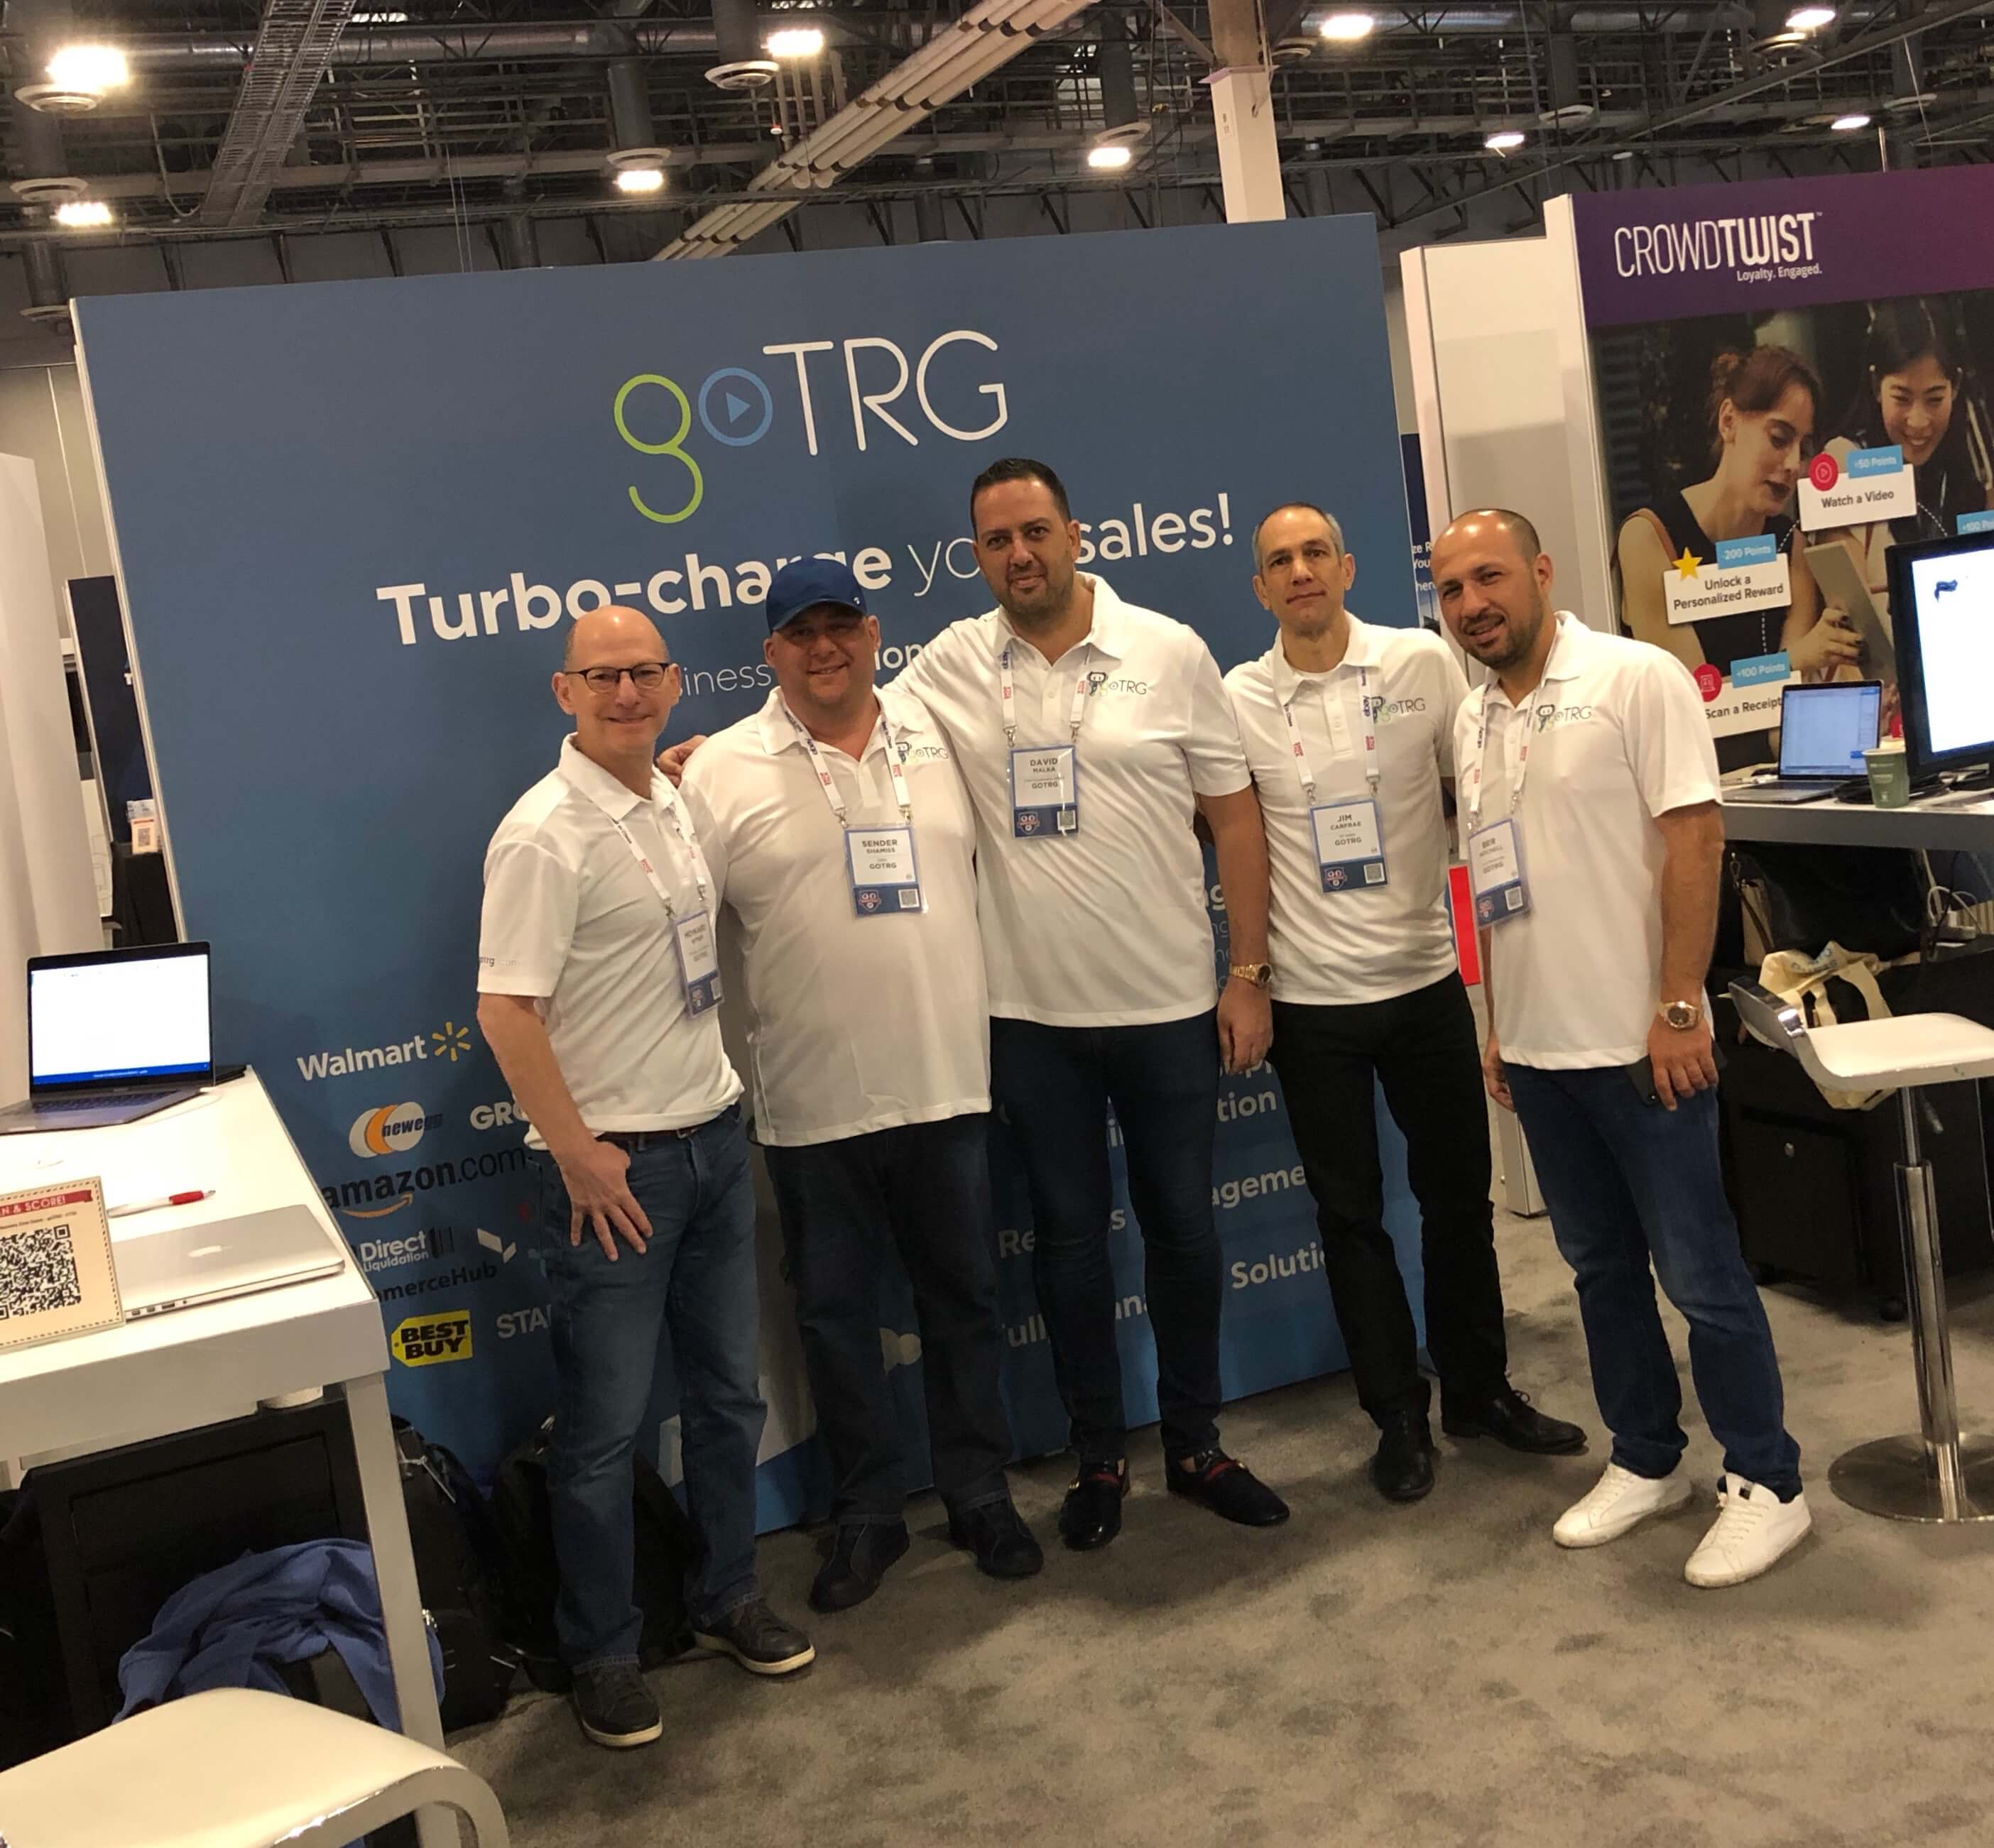 Emerging Technology Leader goTRG Stands Out as an Artificial Intelligence Innovator for Omni-Channel & Supply Chain at Shoptalk 2018